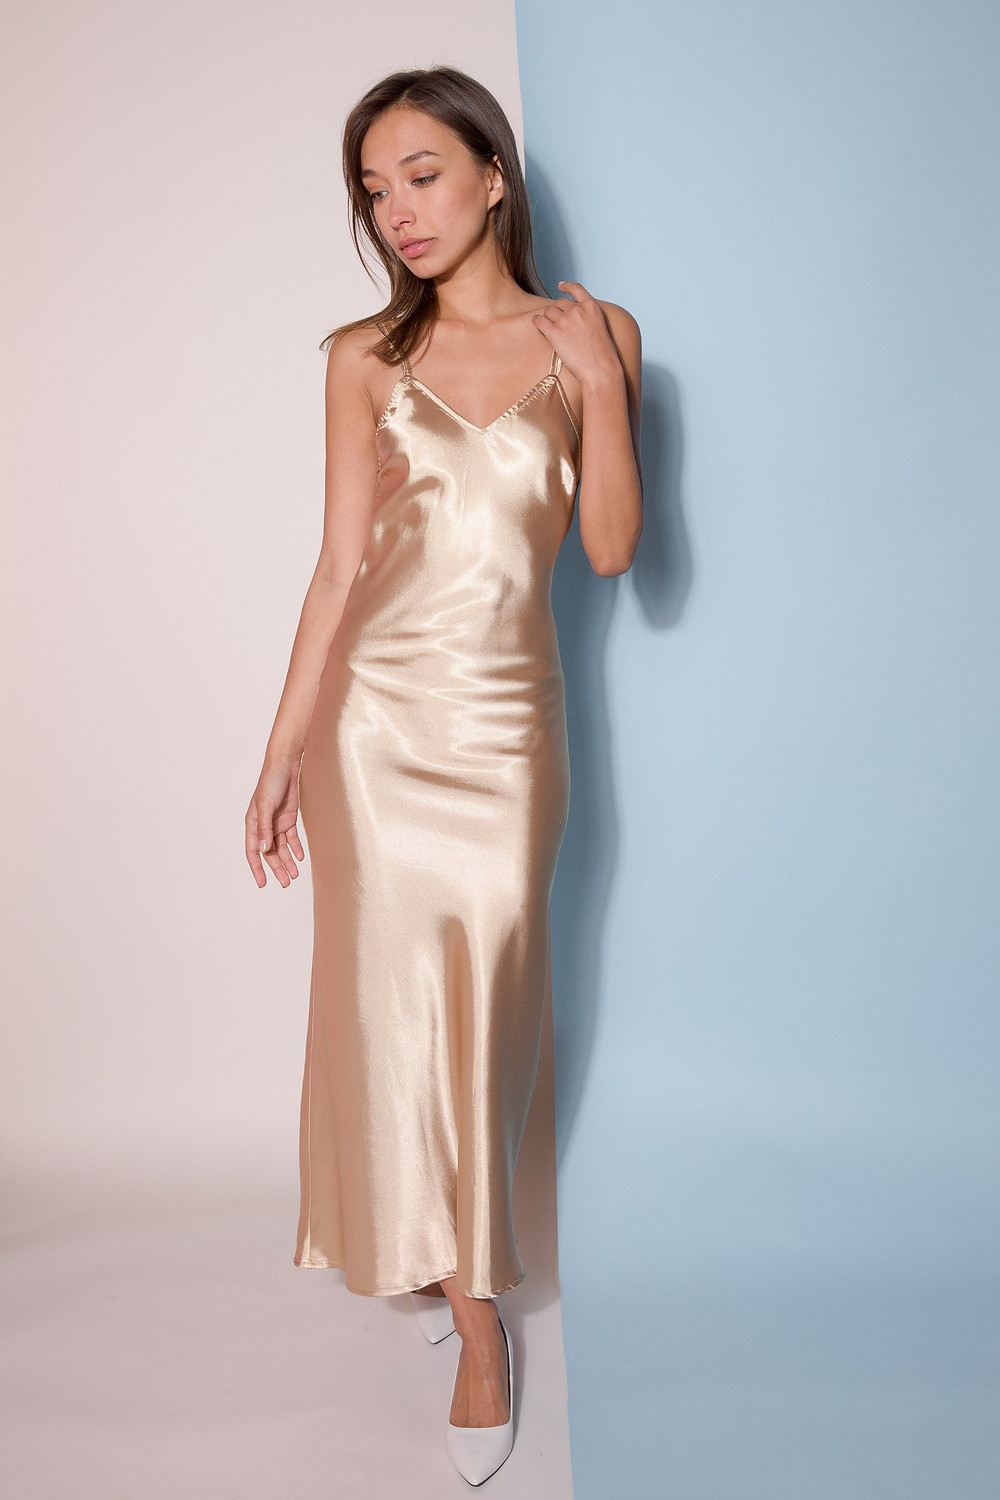 Alysia Gold Dress